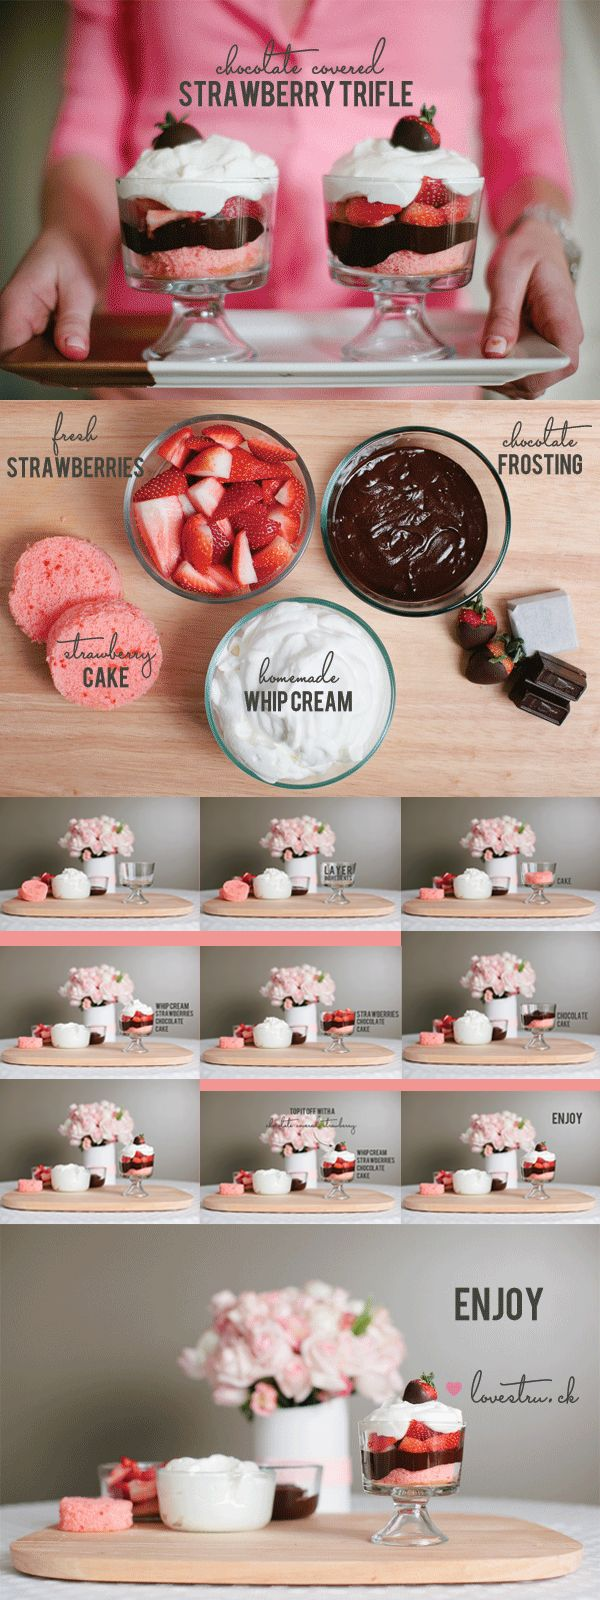 Chocolate covered strawberry trifle  http://ohthelovelythings.blogspot.com/2012/02/chocolate-covered-strawberry-trifle.html